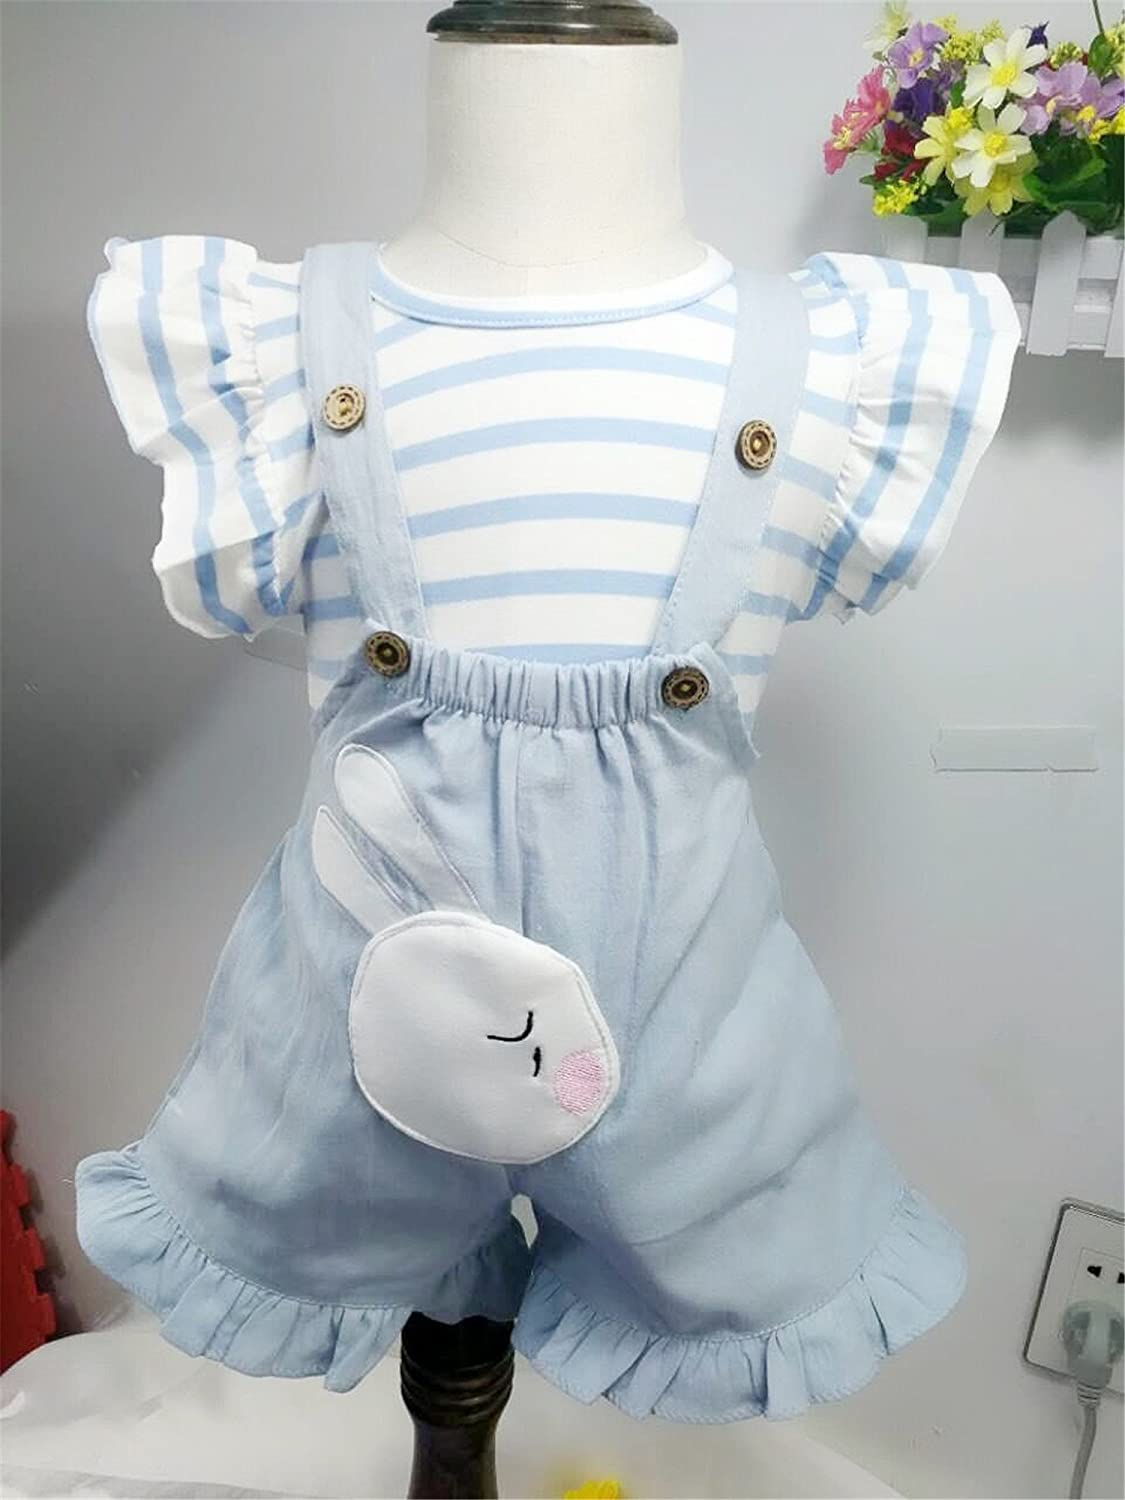 Newborn Cute Clothes Suit Easter Rabbit Printed Striped Summer Outfit Romper Aniwon Baby Top Romper Suit